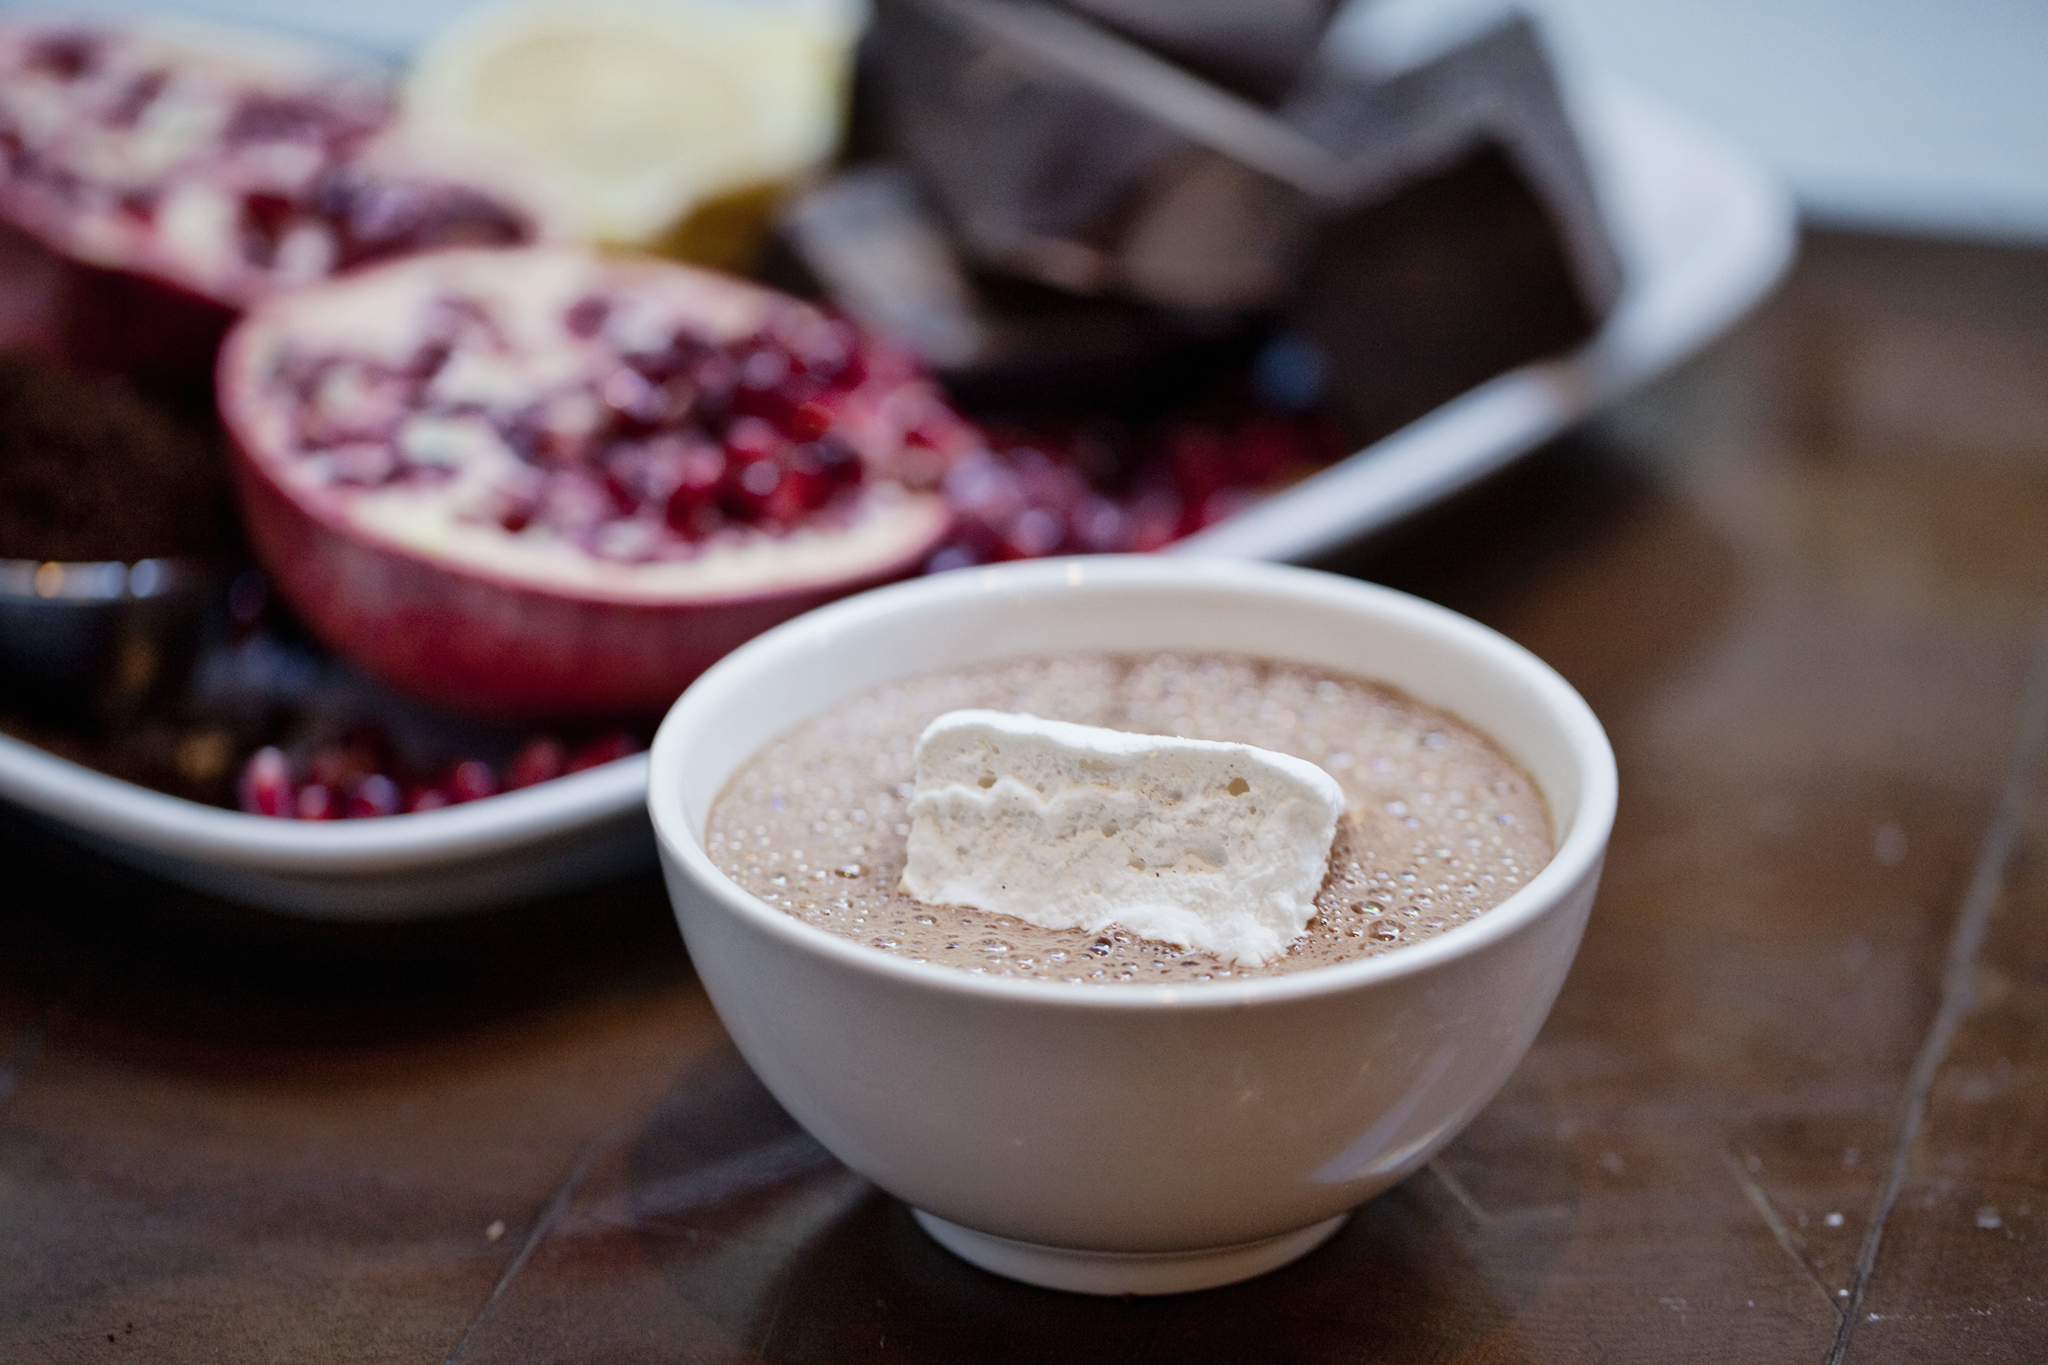 Indulge in decadent cocoa creations during the Hot Chocolate Festival